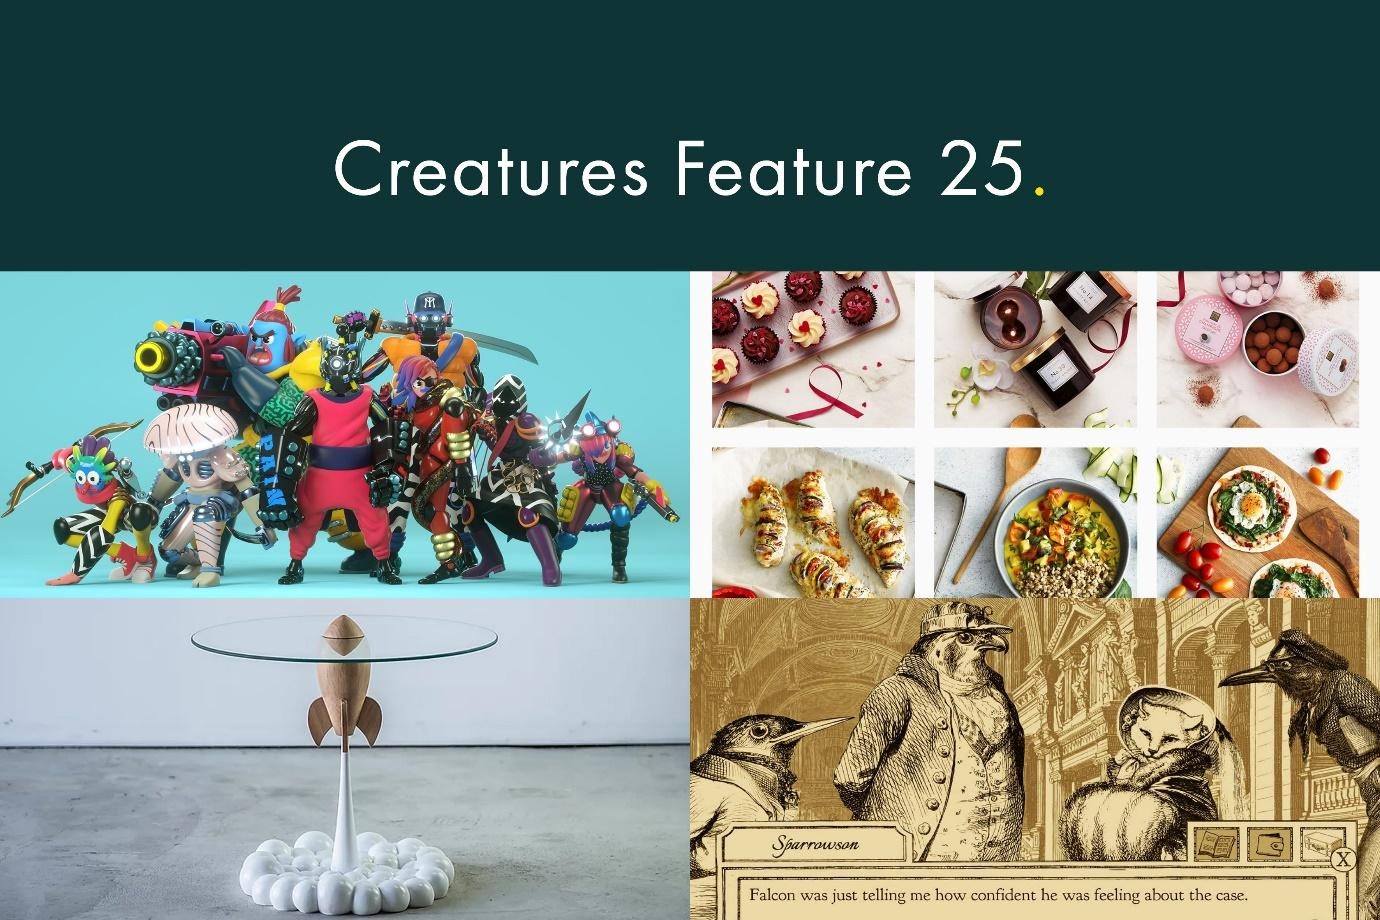 Creature Feature 25